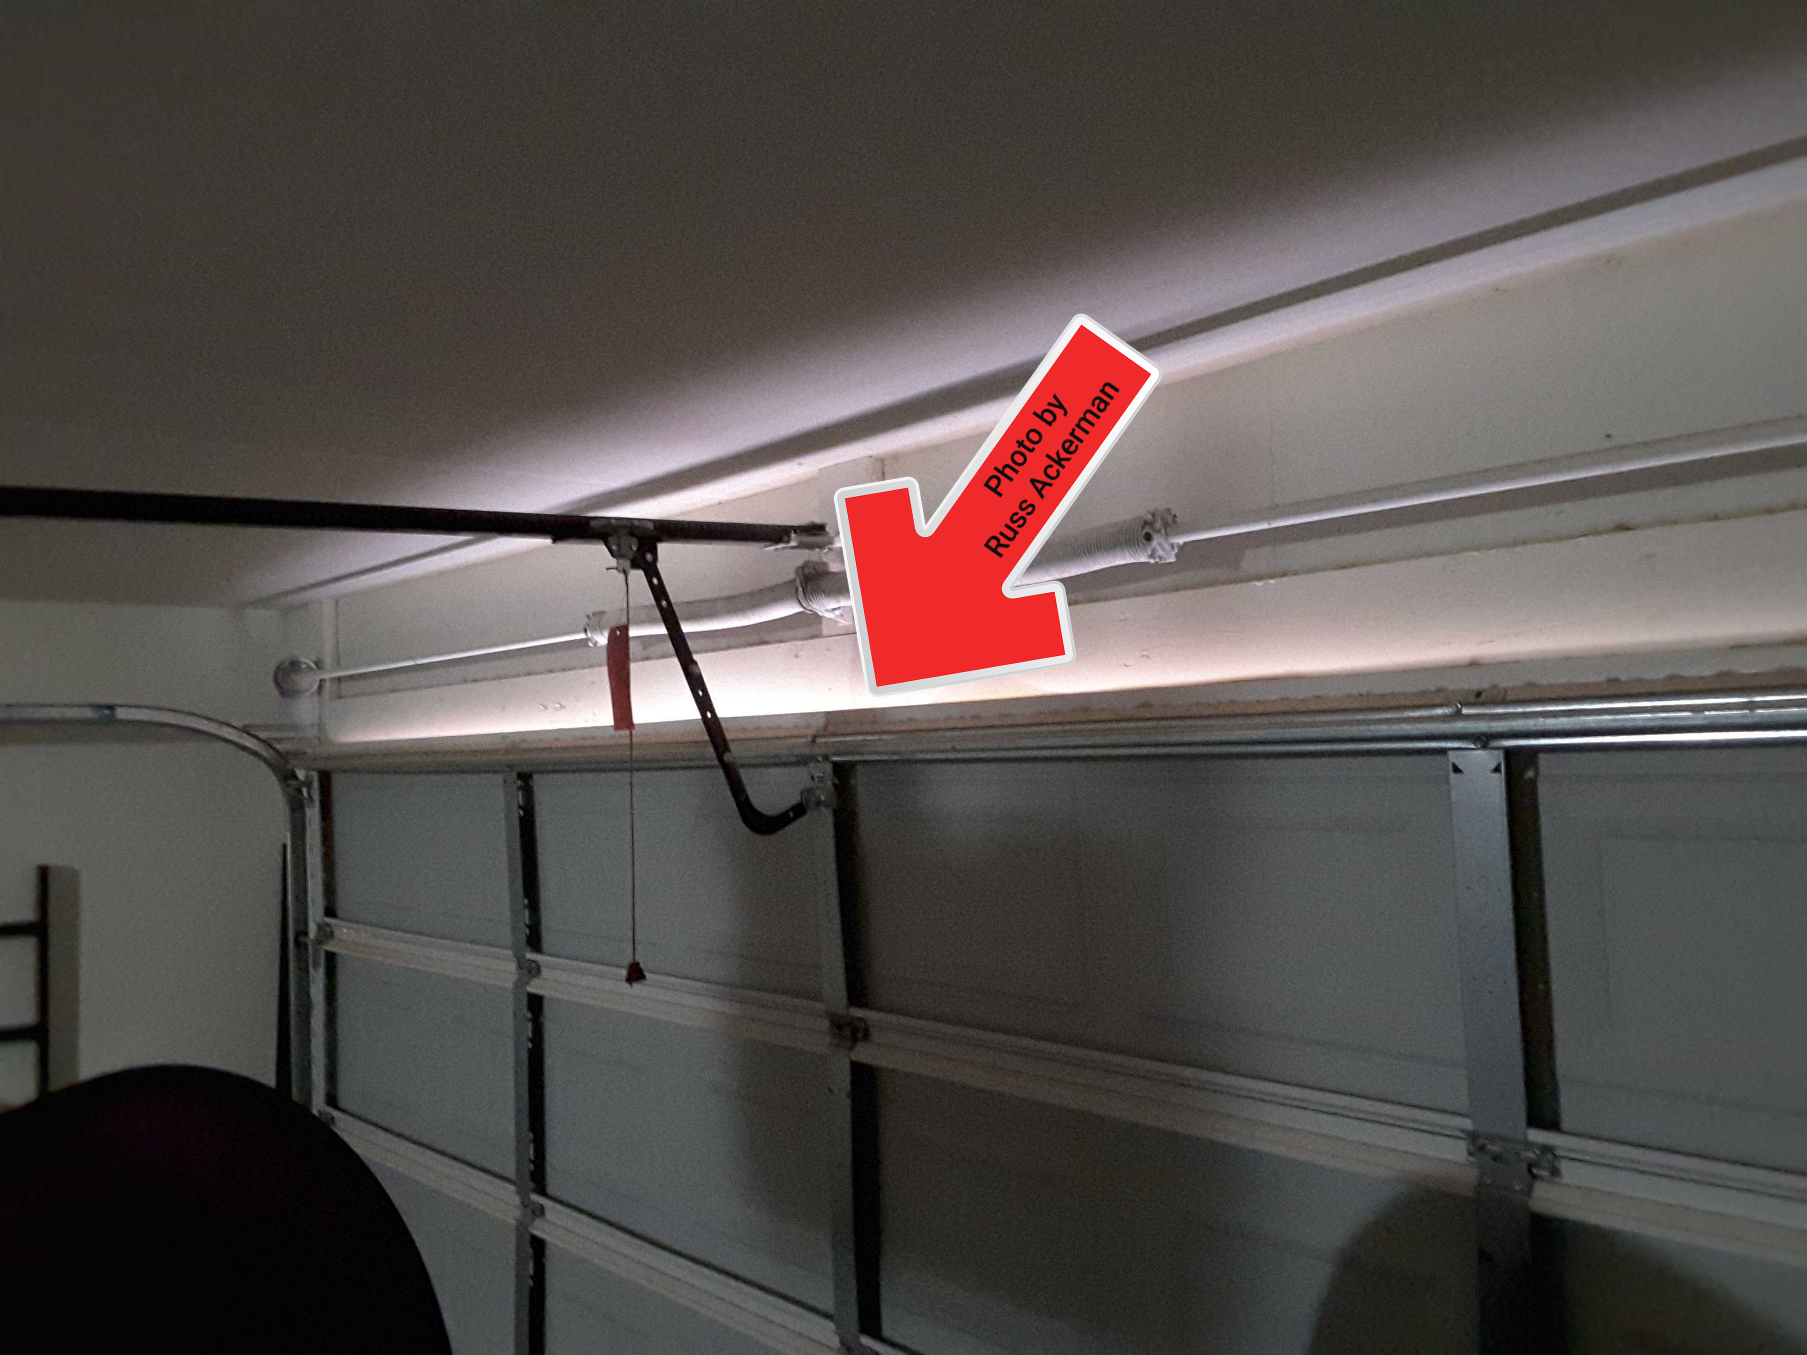 Bent overhead garage doors are common when the pressure reverse feature on your opener is not working properly.